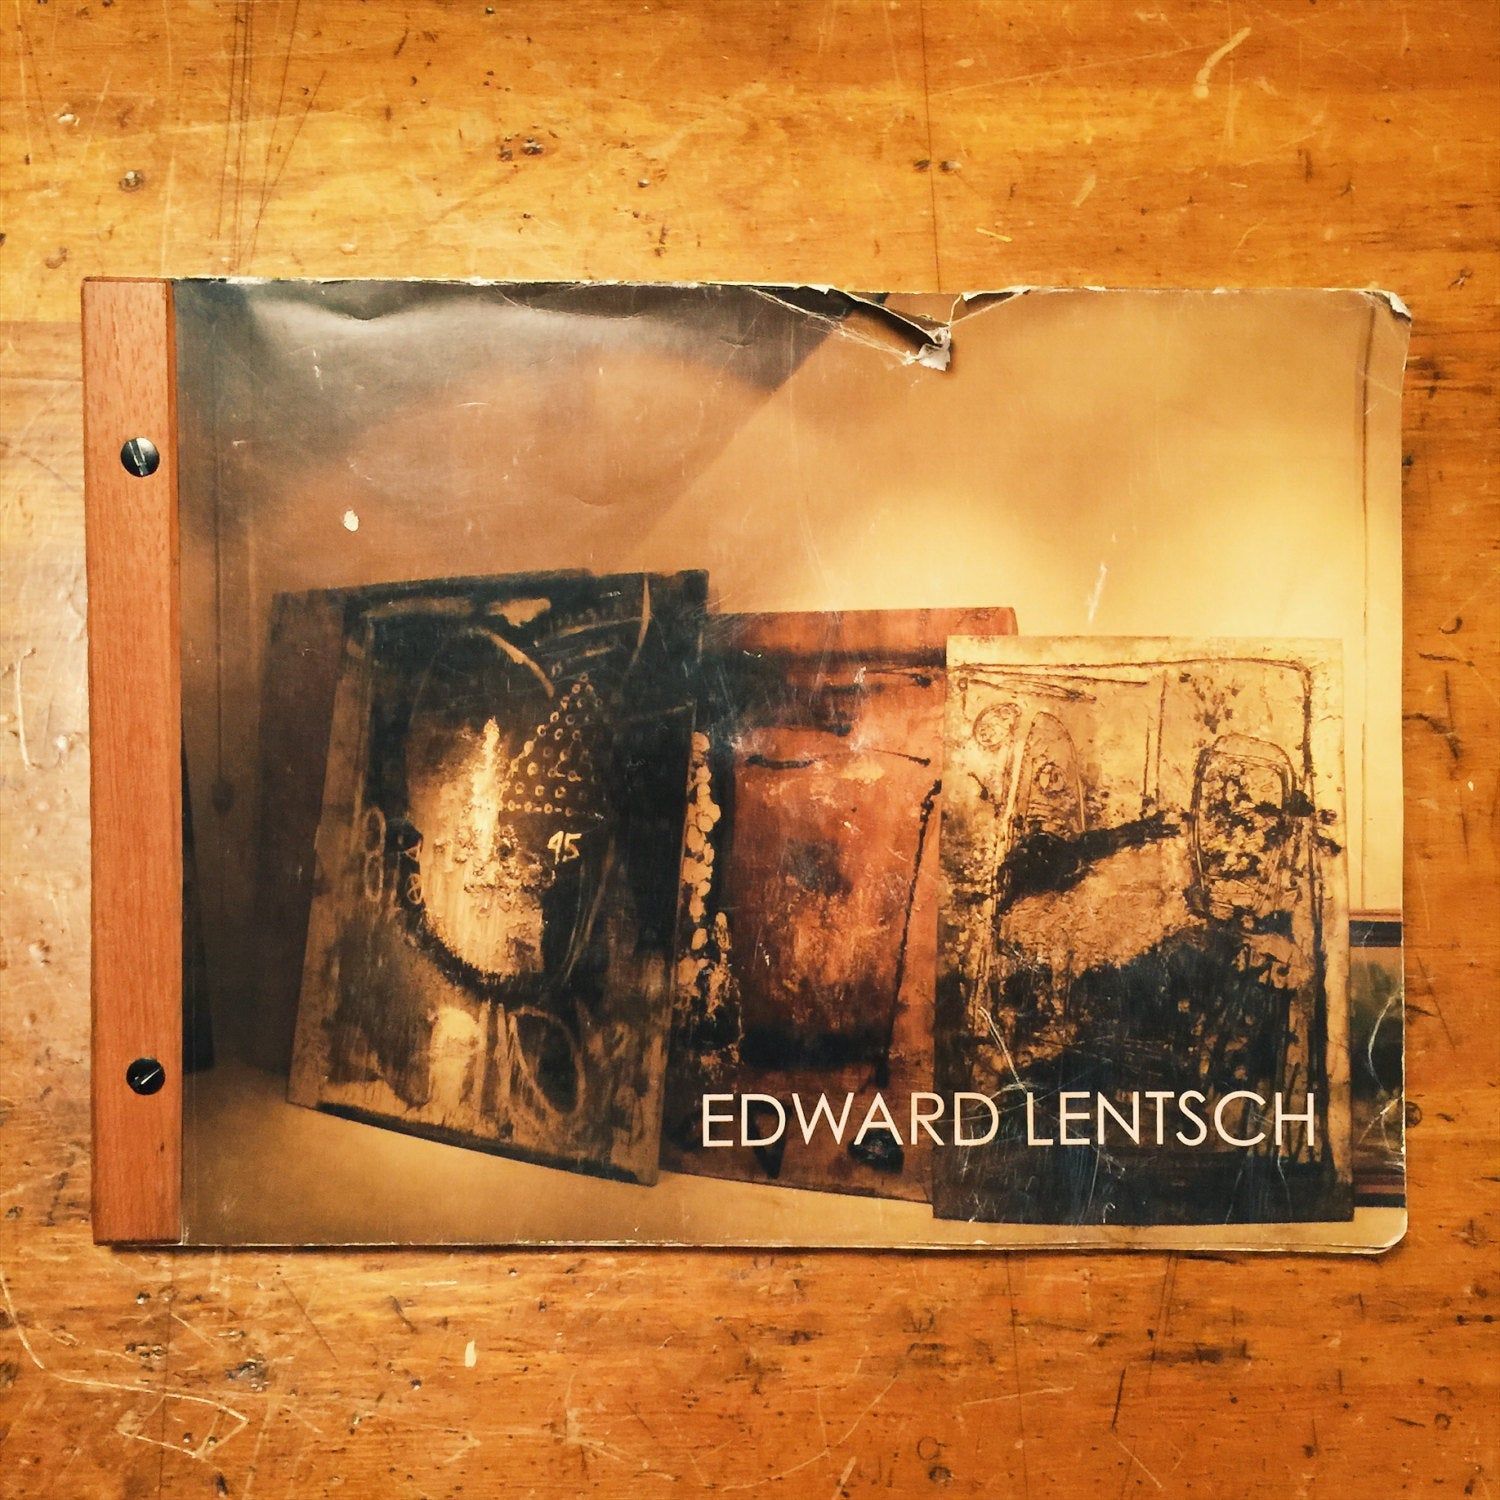 Edward Lentsch Mixed Media Oil on Canvas Painting with Exhibit Book - Industrial - Minnesota Artist - Unsigned - Unframed